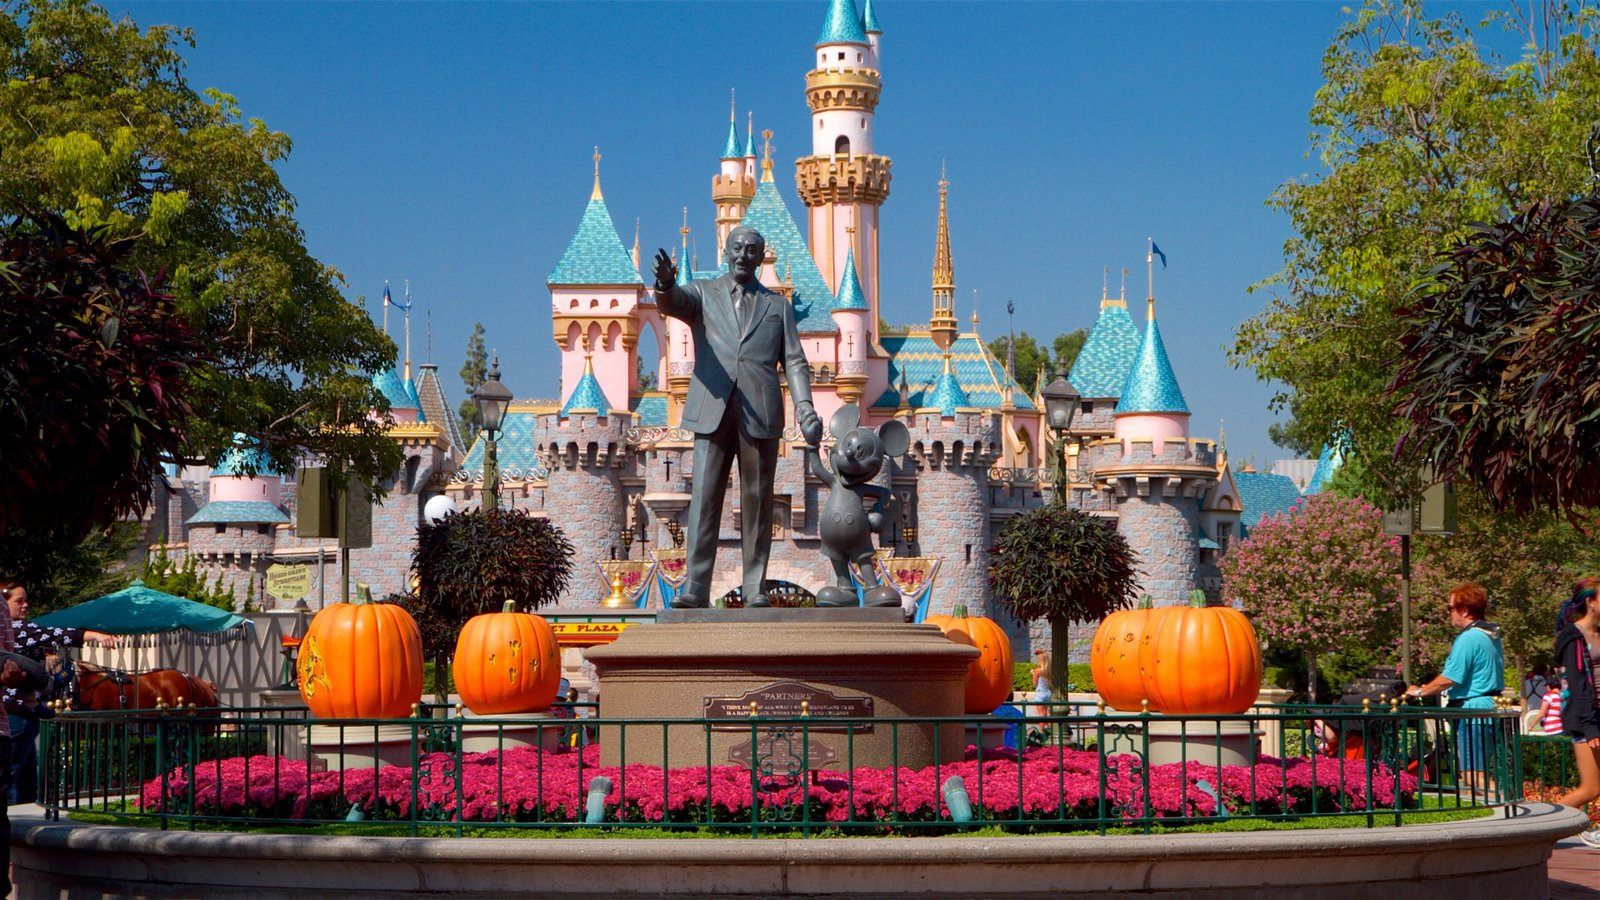 Theme Parks Pictures View Images of California